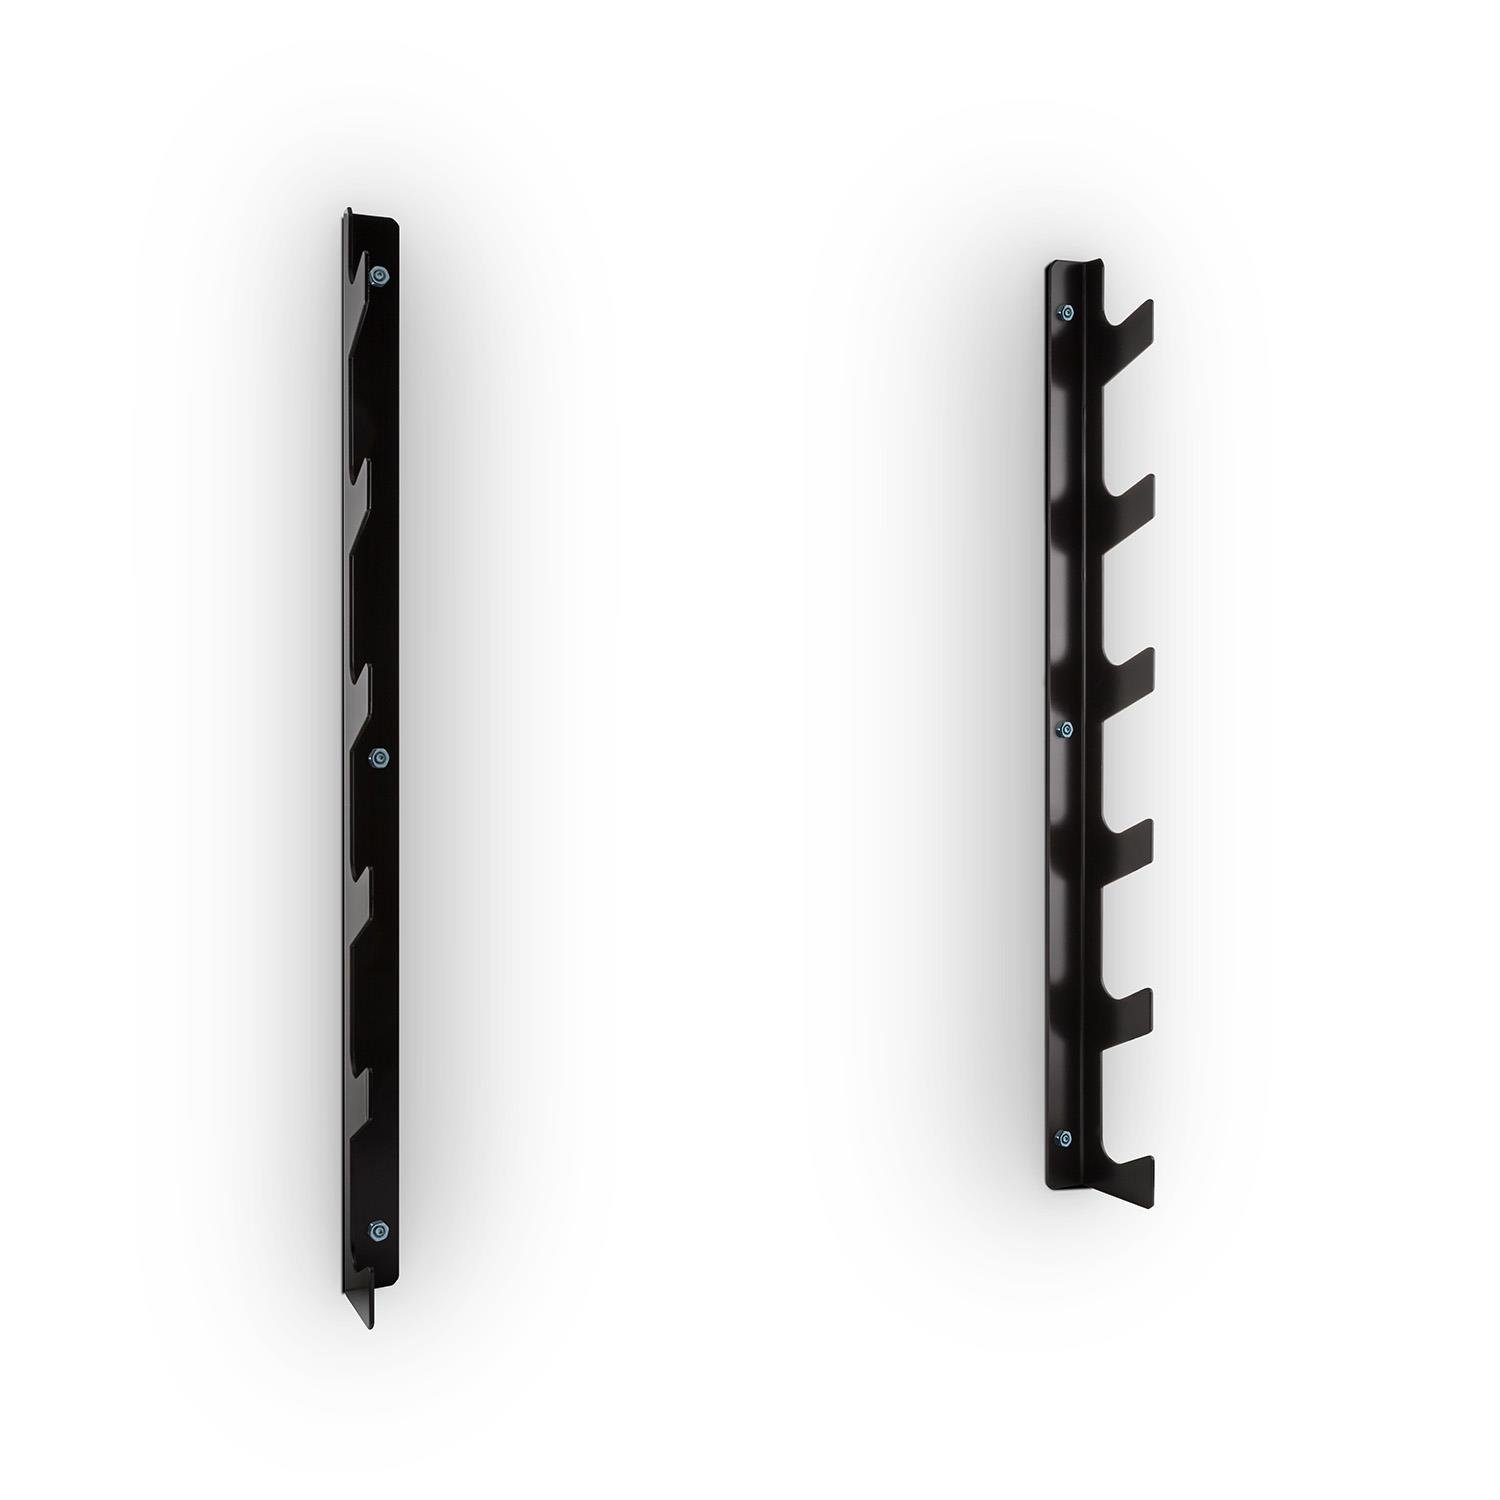 Capital Sports Barria Soporte en pared para barras de pesas (6 ganchos, 250kg carga